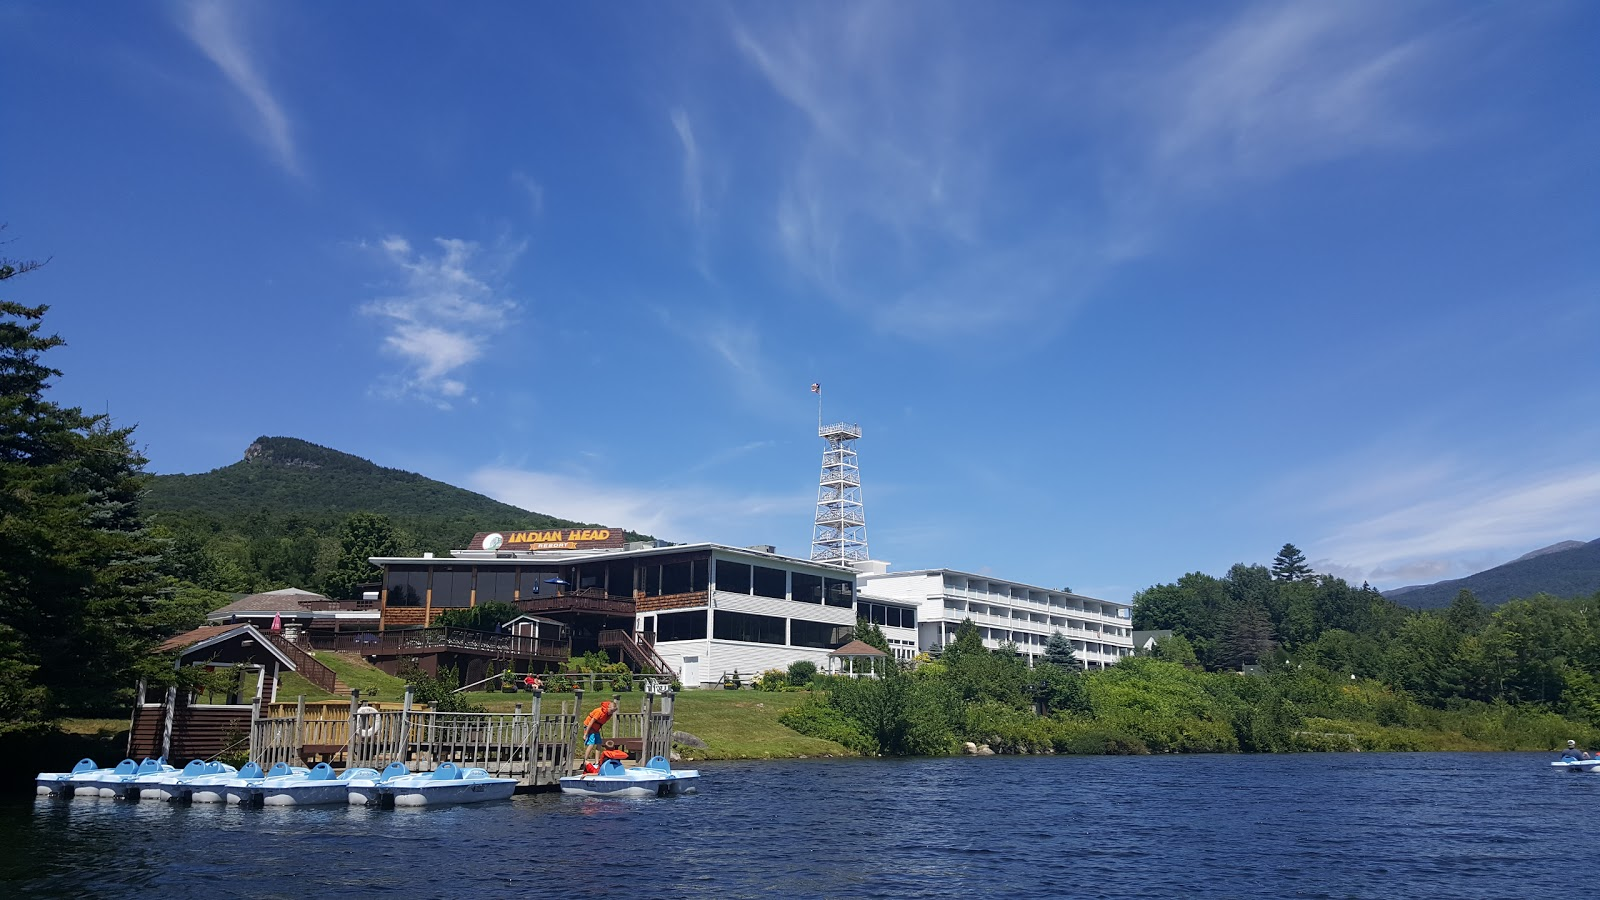 Loon Mountain Race Event Image